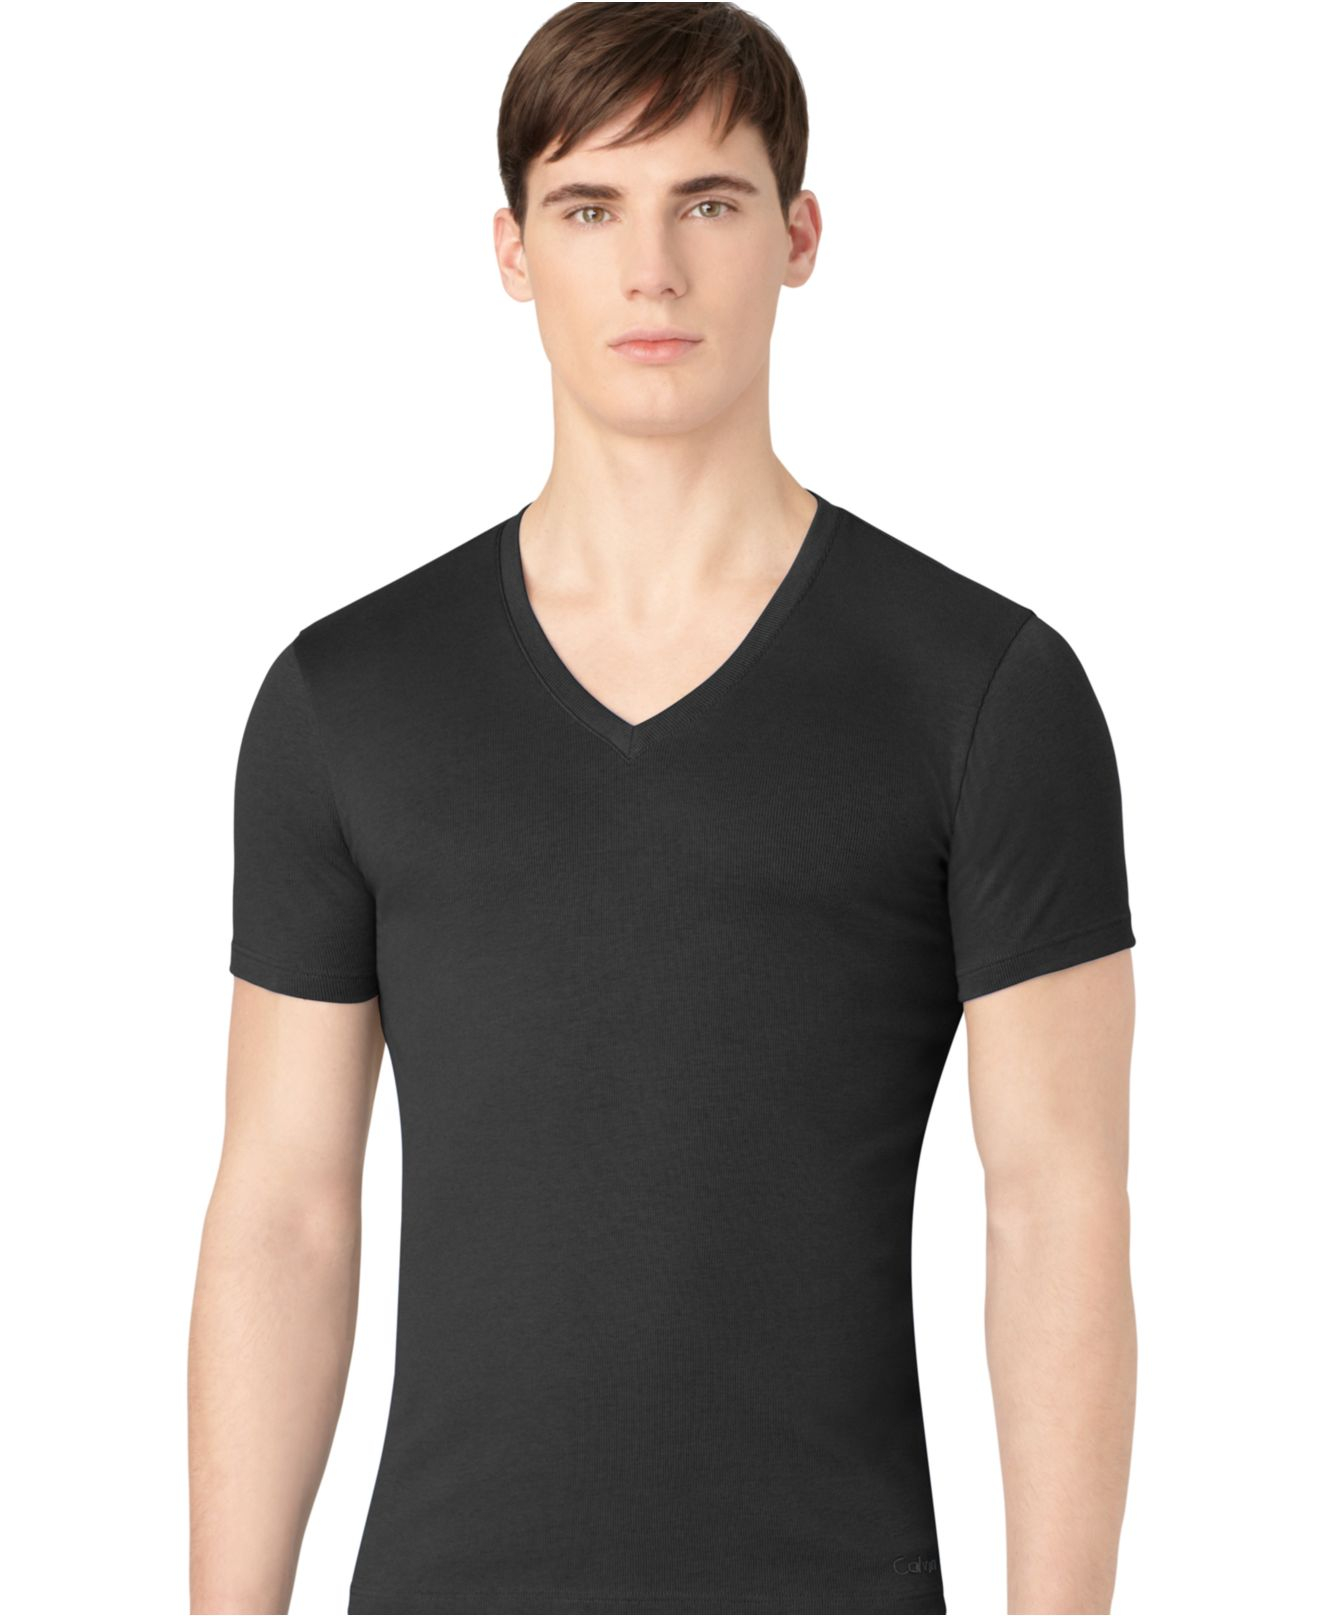 Design custom made slim fit t-shirts online. Free shipping, bulk discounts and no minimums or setups for custom made slim fit tees. Free design templates. Over 10 million customer designs since